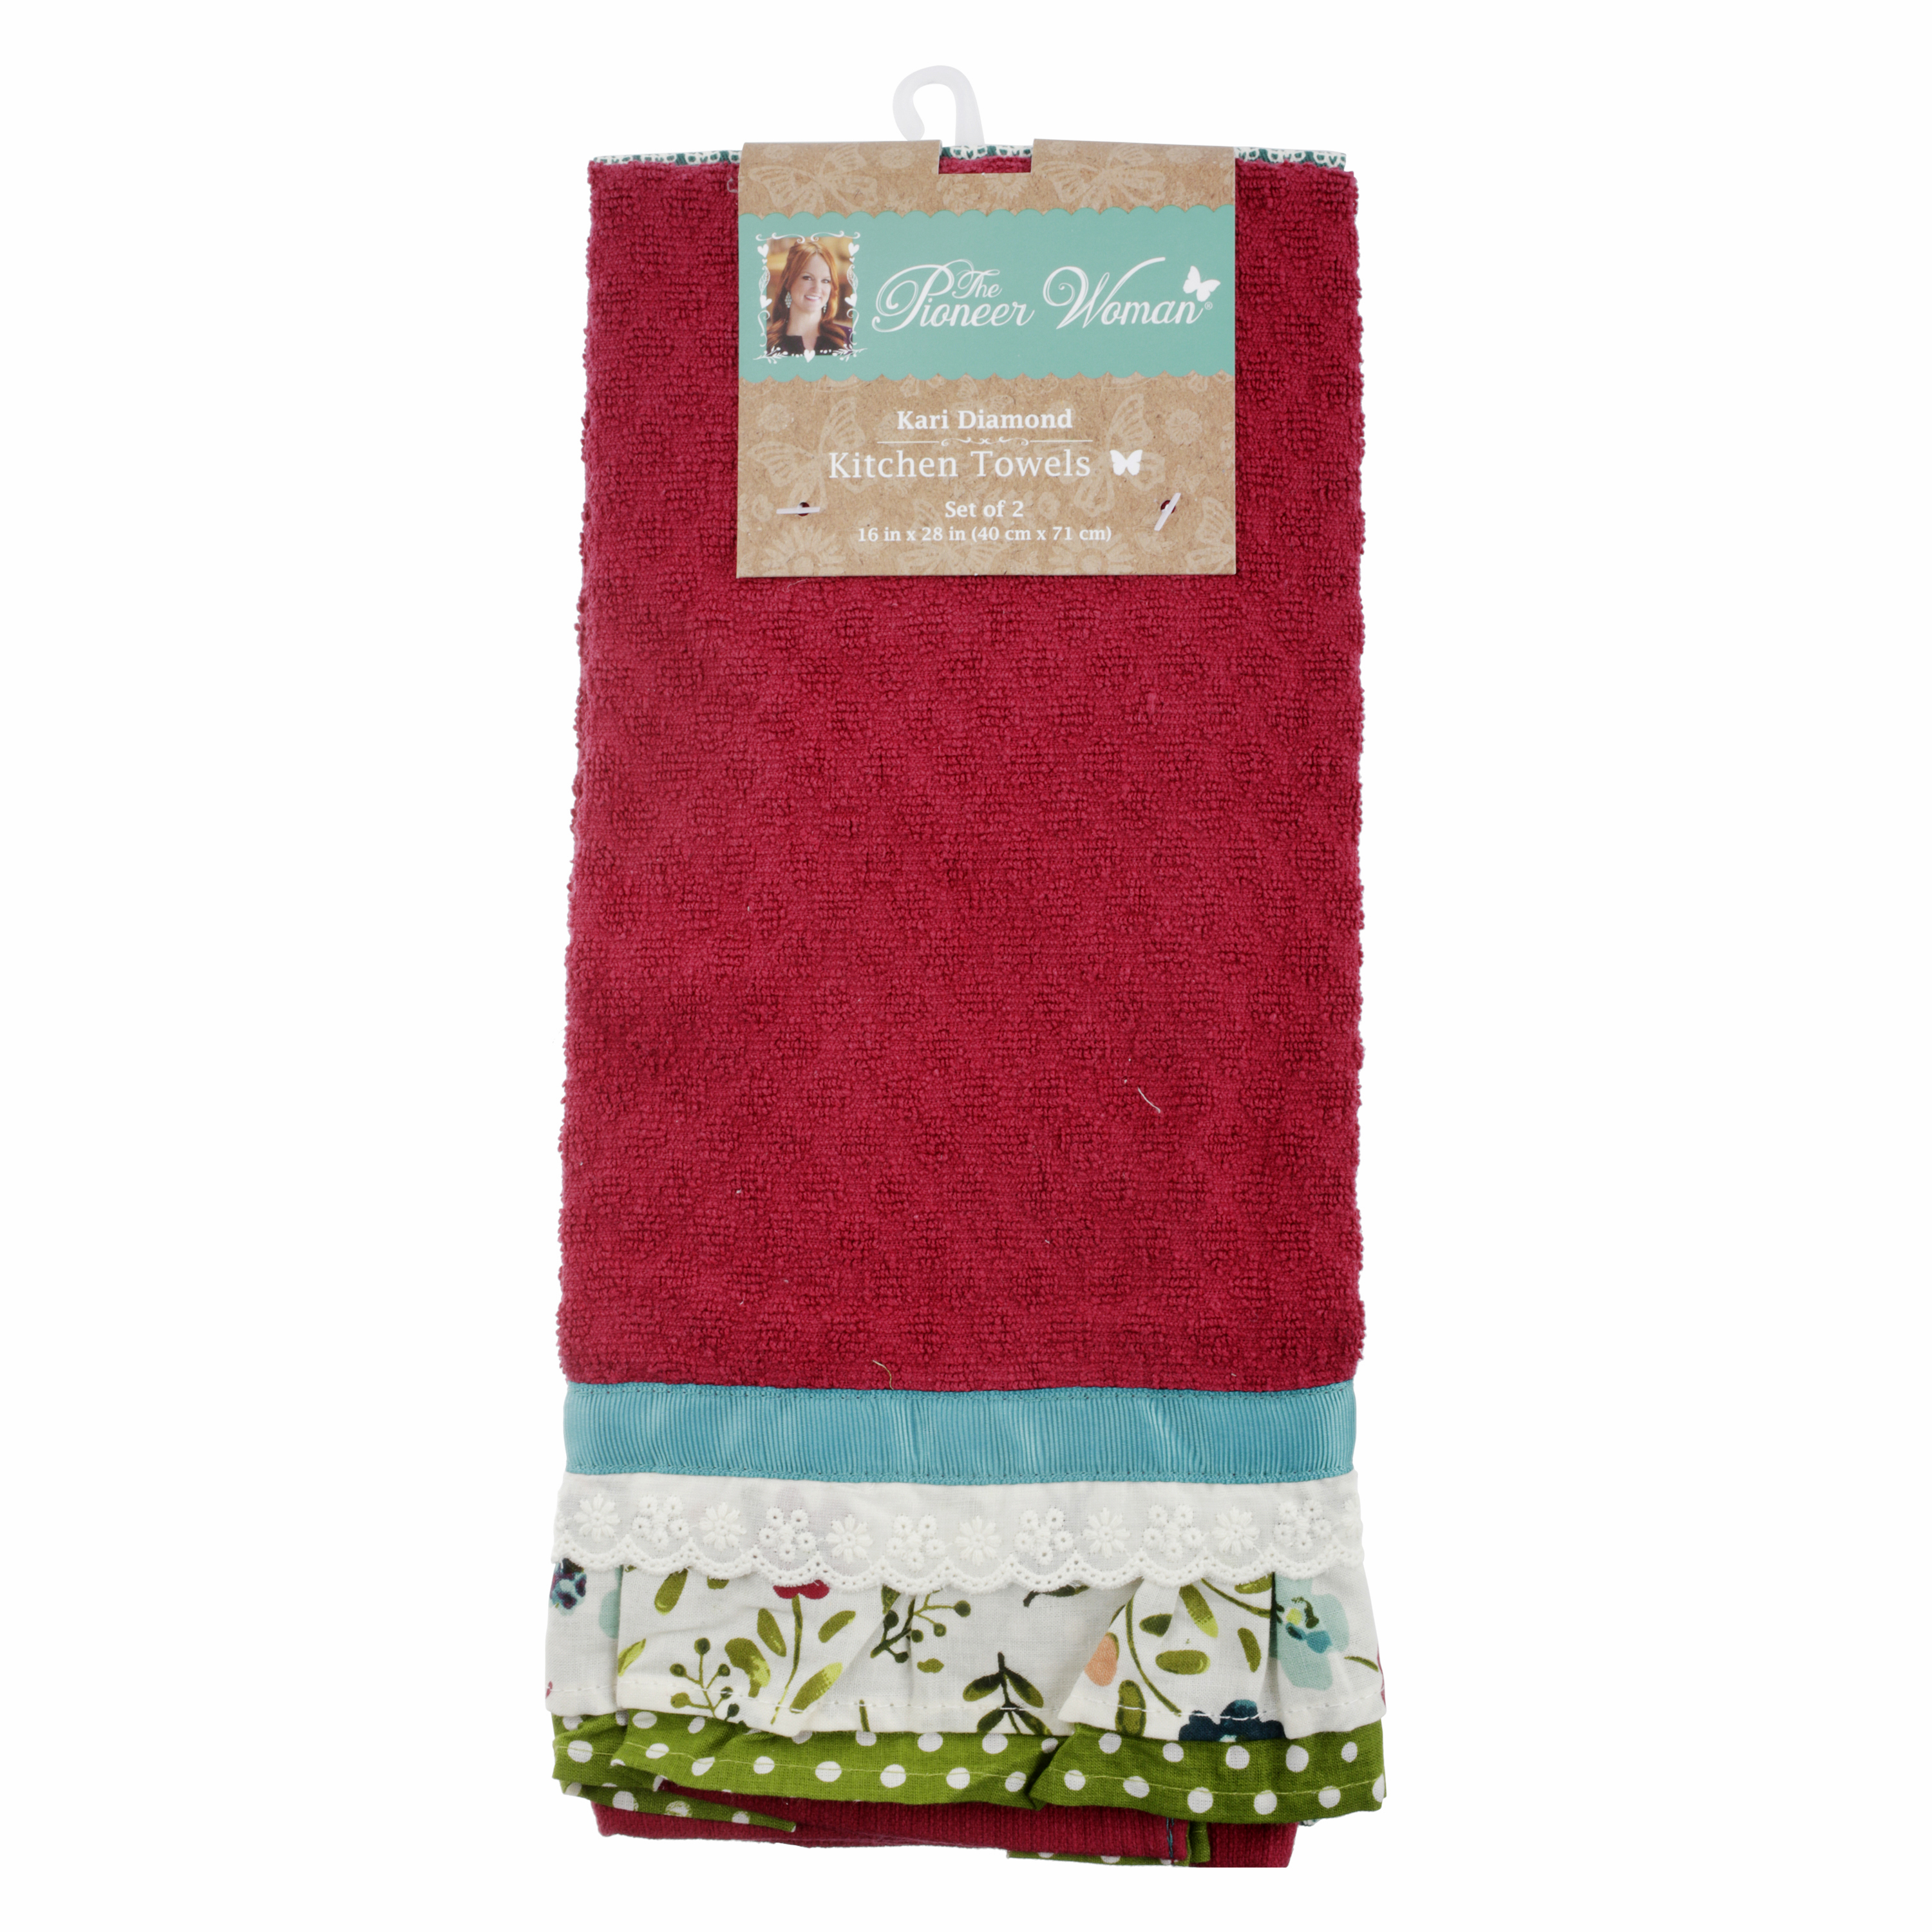 The Pioneer Woman Kari Diamond Kitchen Towel 2 Pack